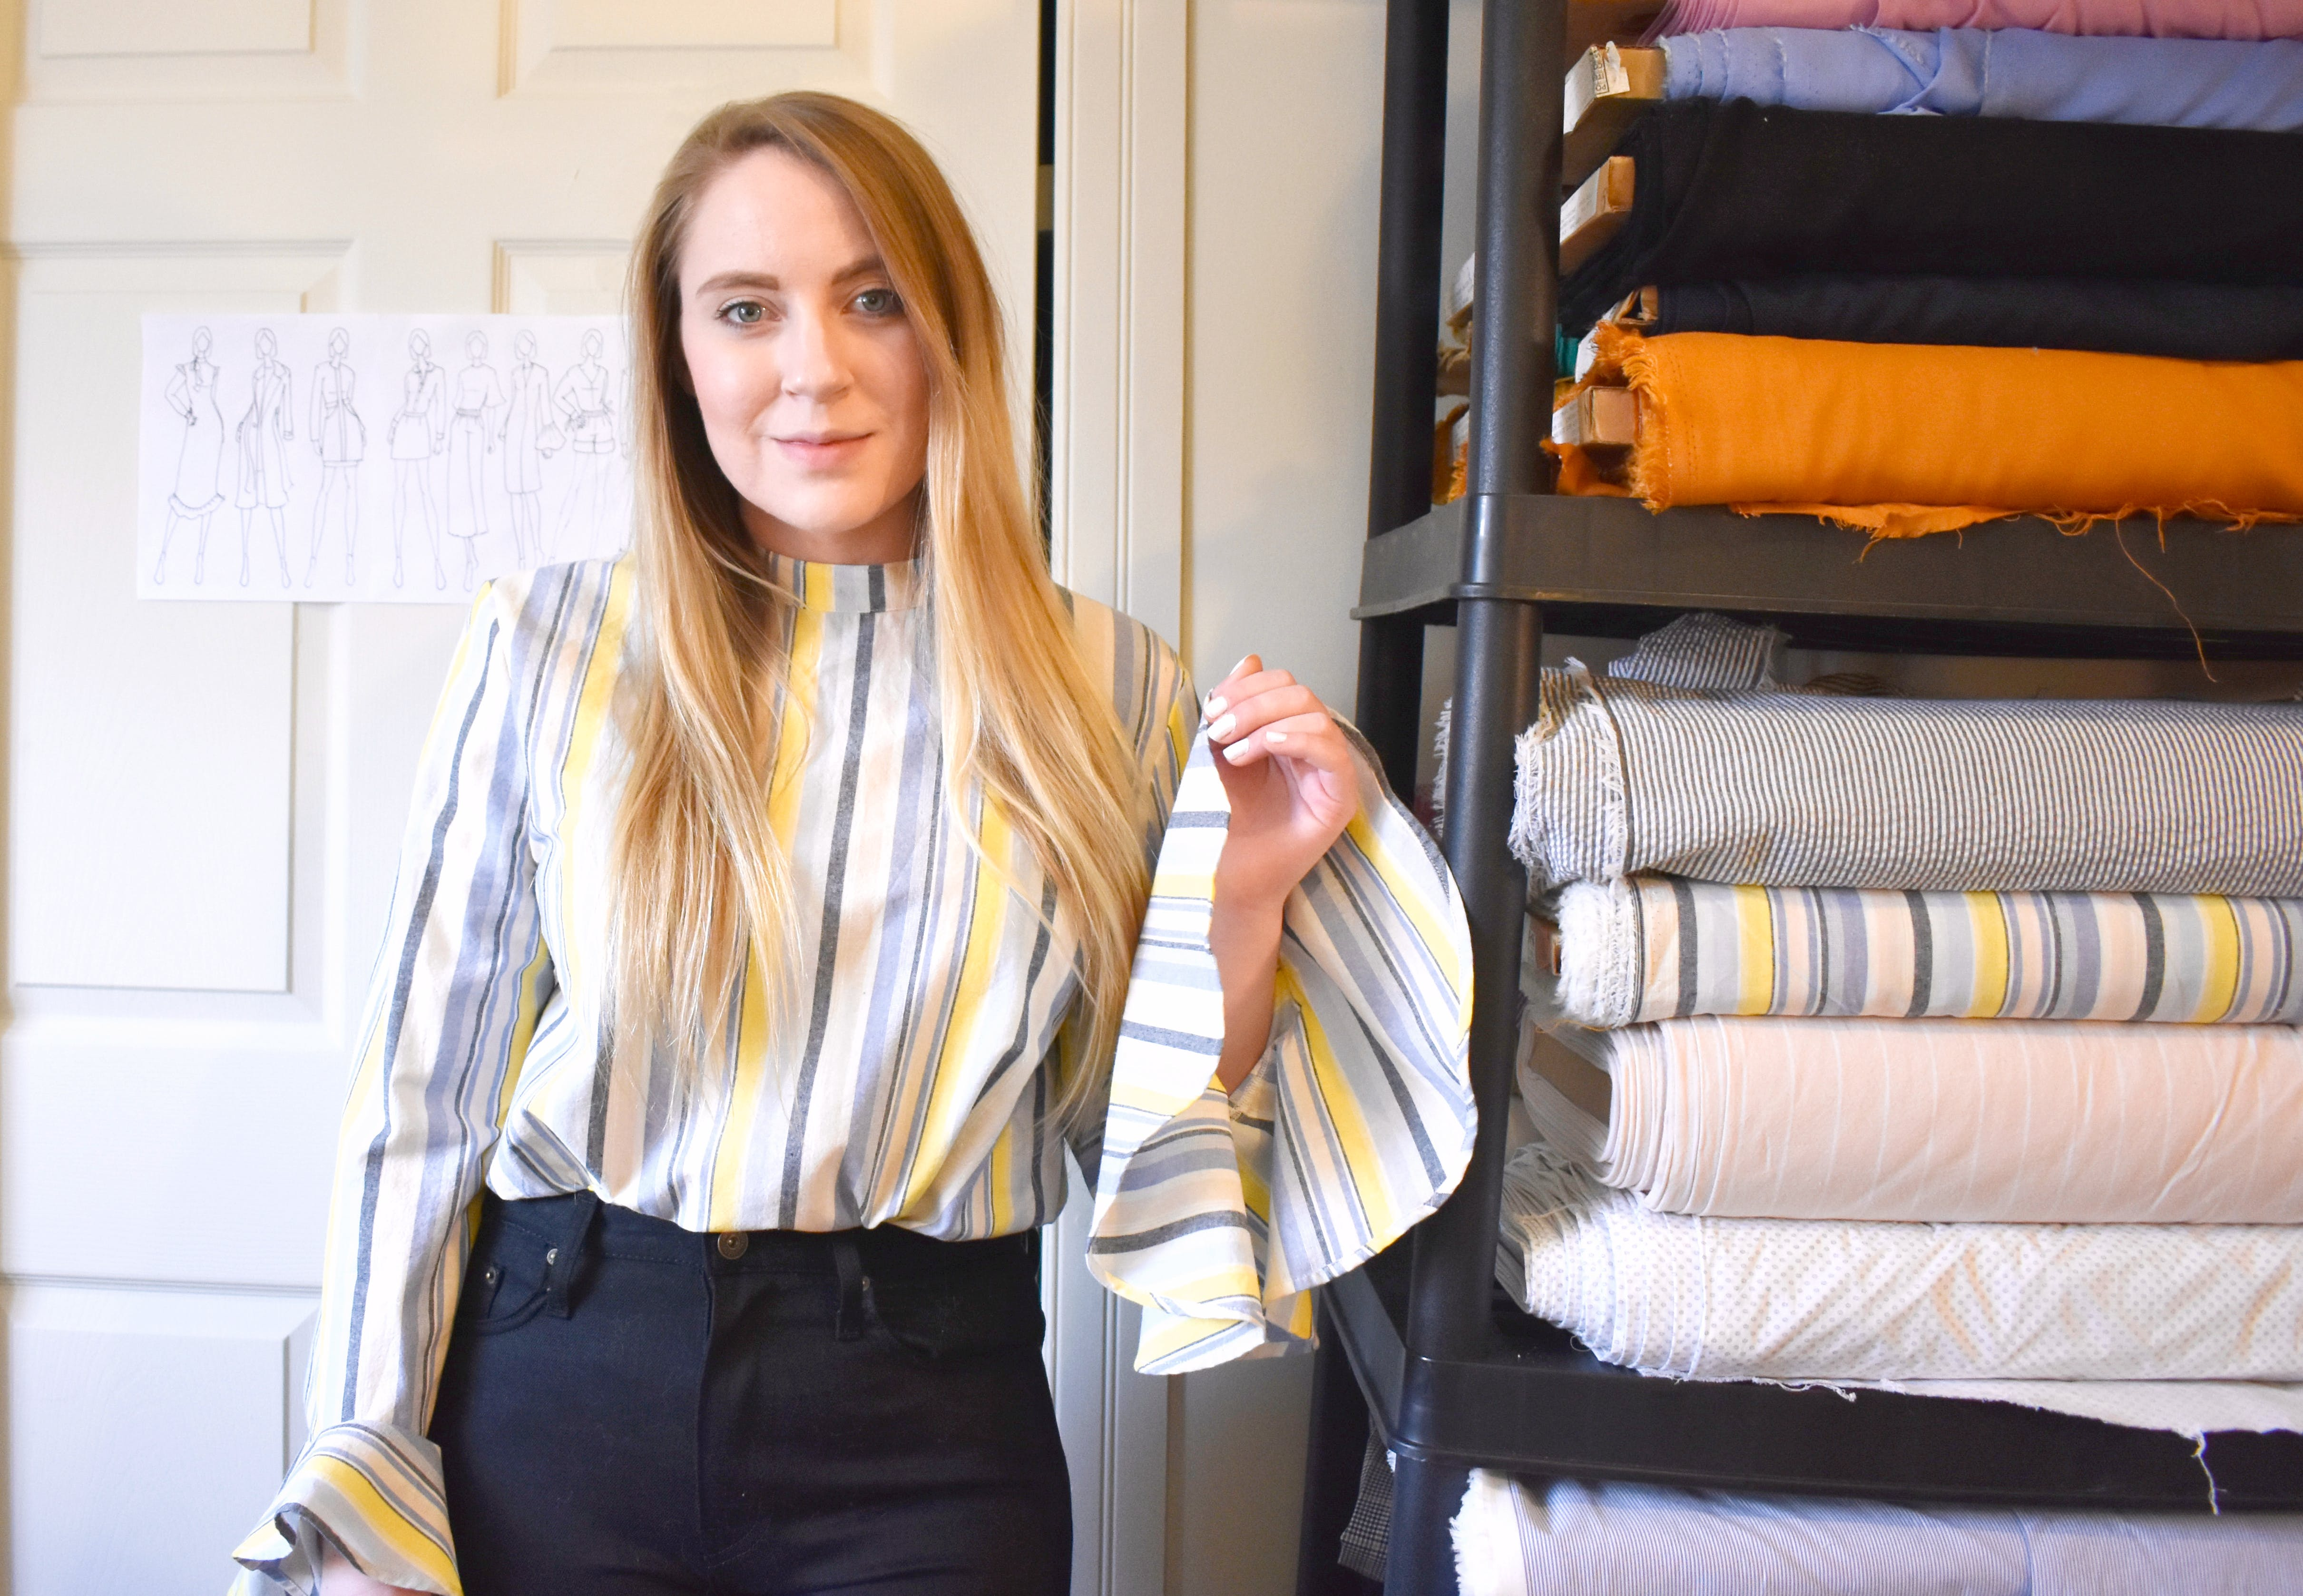 Kelsey MacDonald, a fashion designer based in Halifax, says COVID-19 helped her realize the importance of having an online store for her brand.